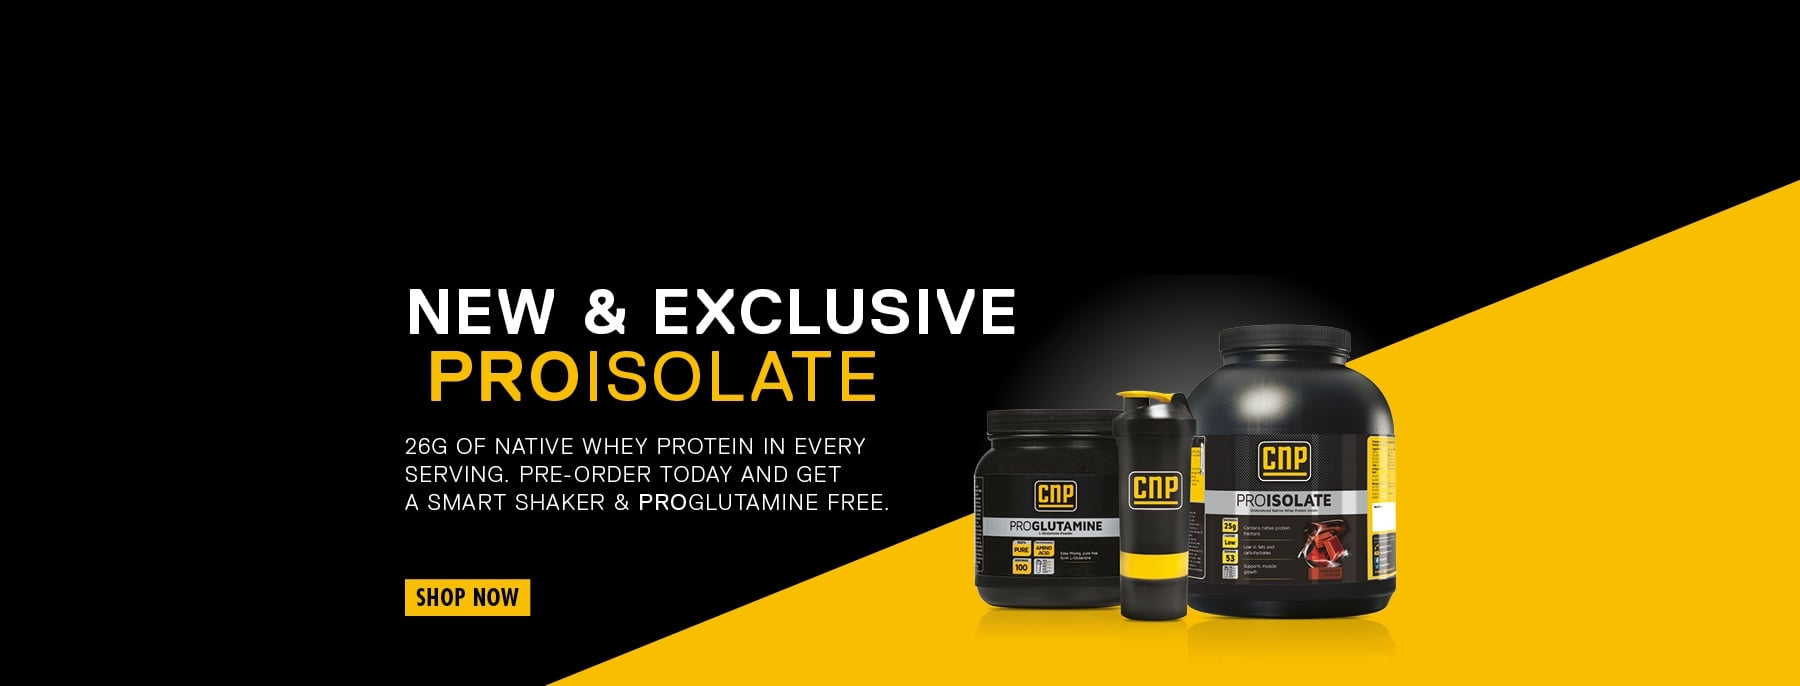 Pro Isolate Launch